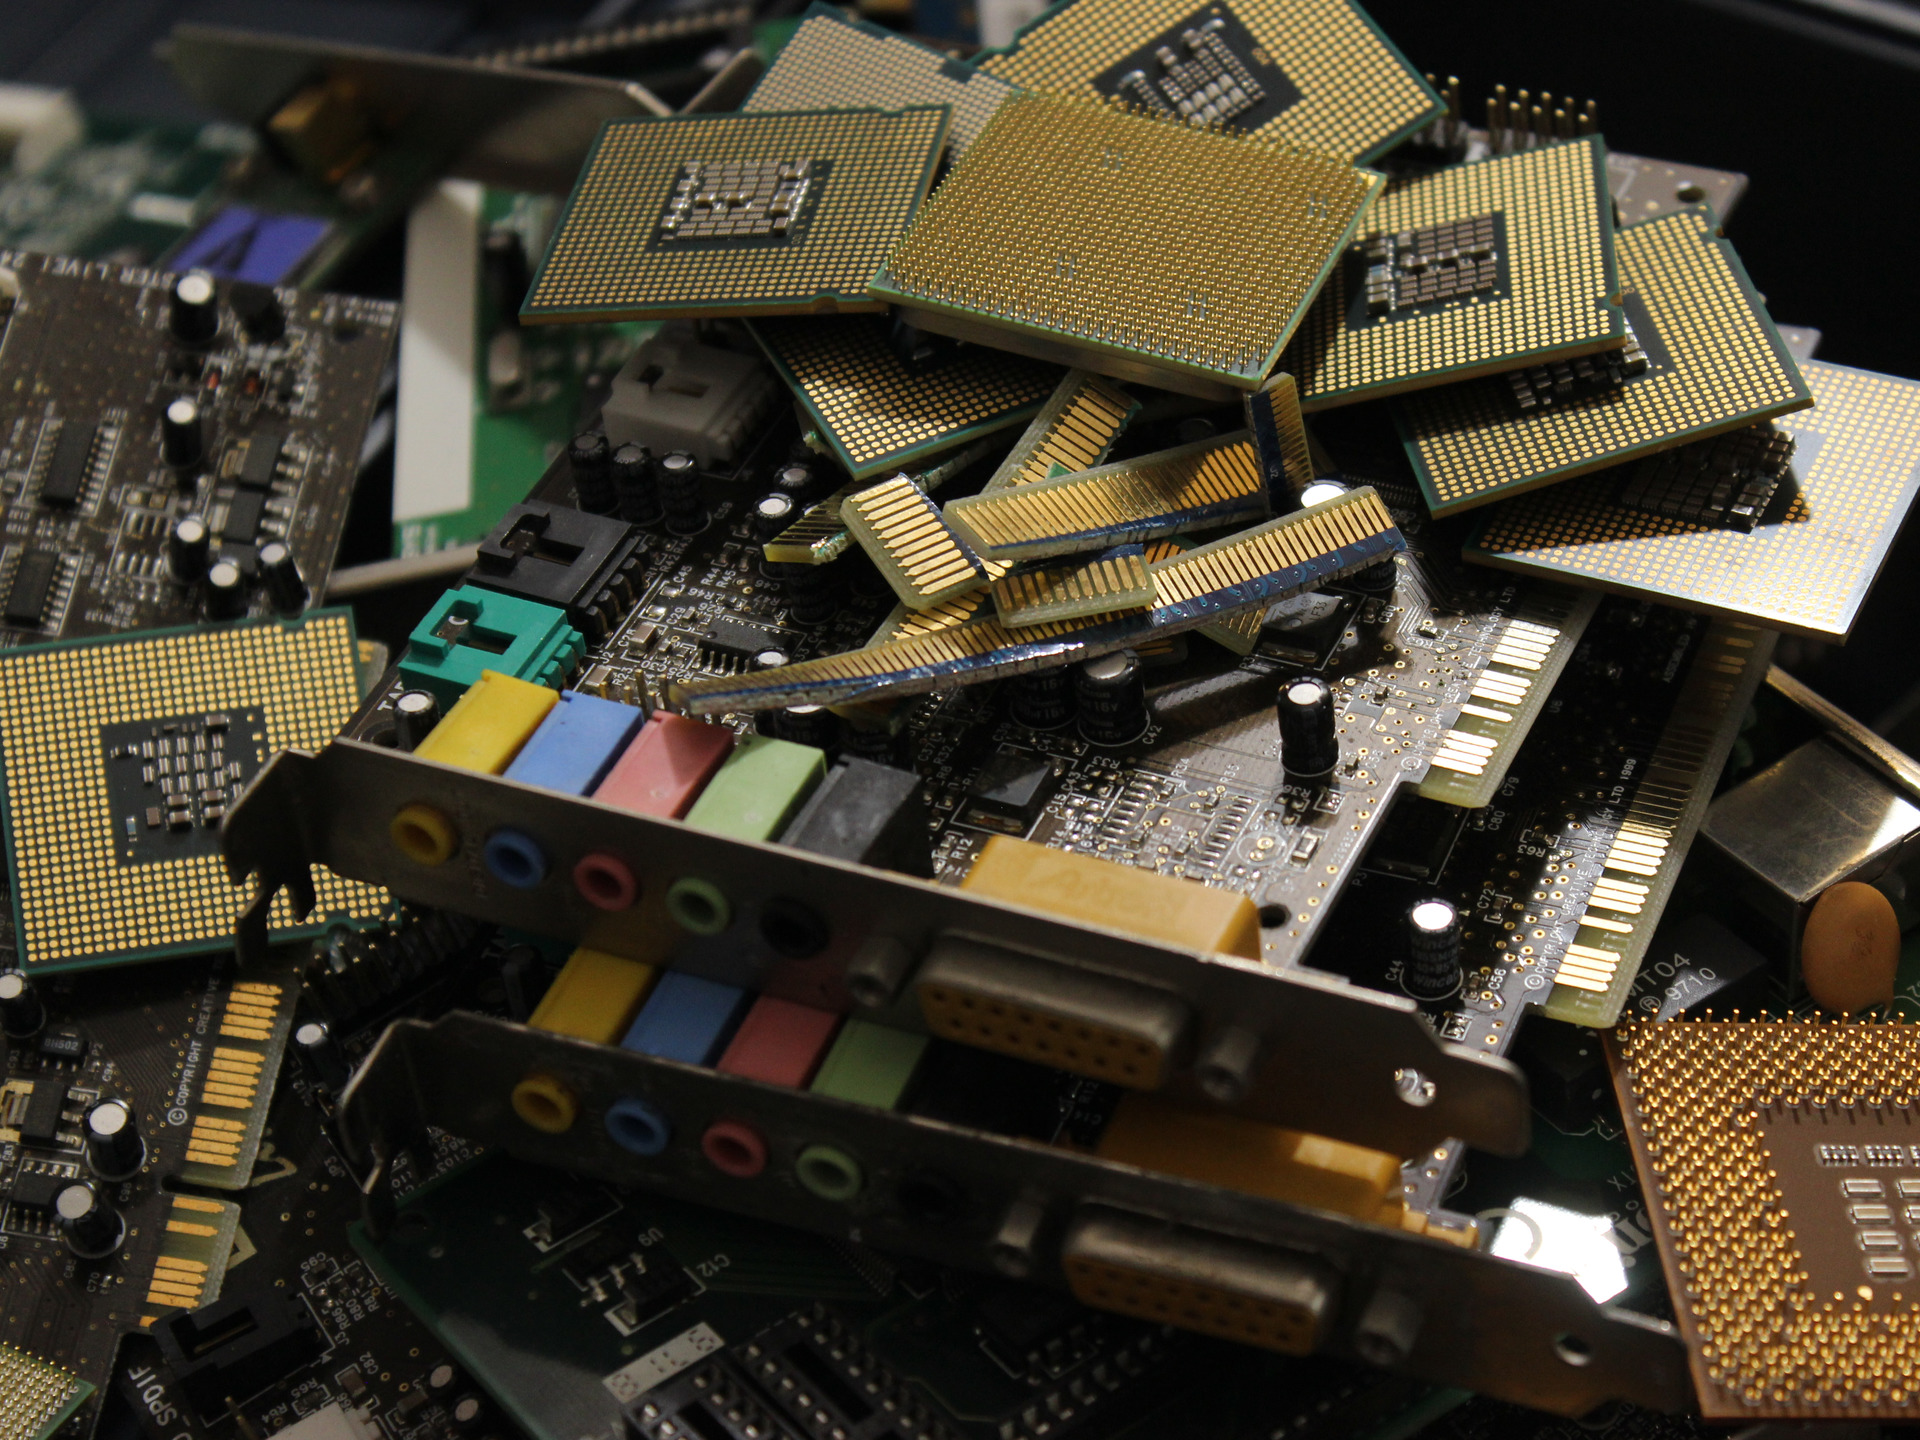 PCB Circuit Boards promoting e-waste recycling